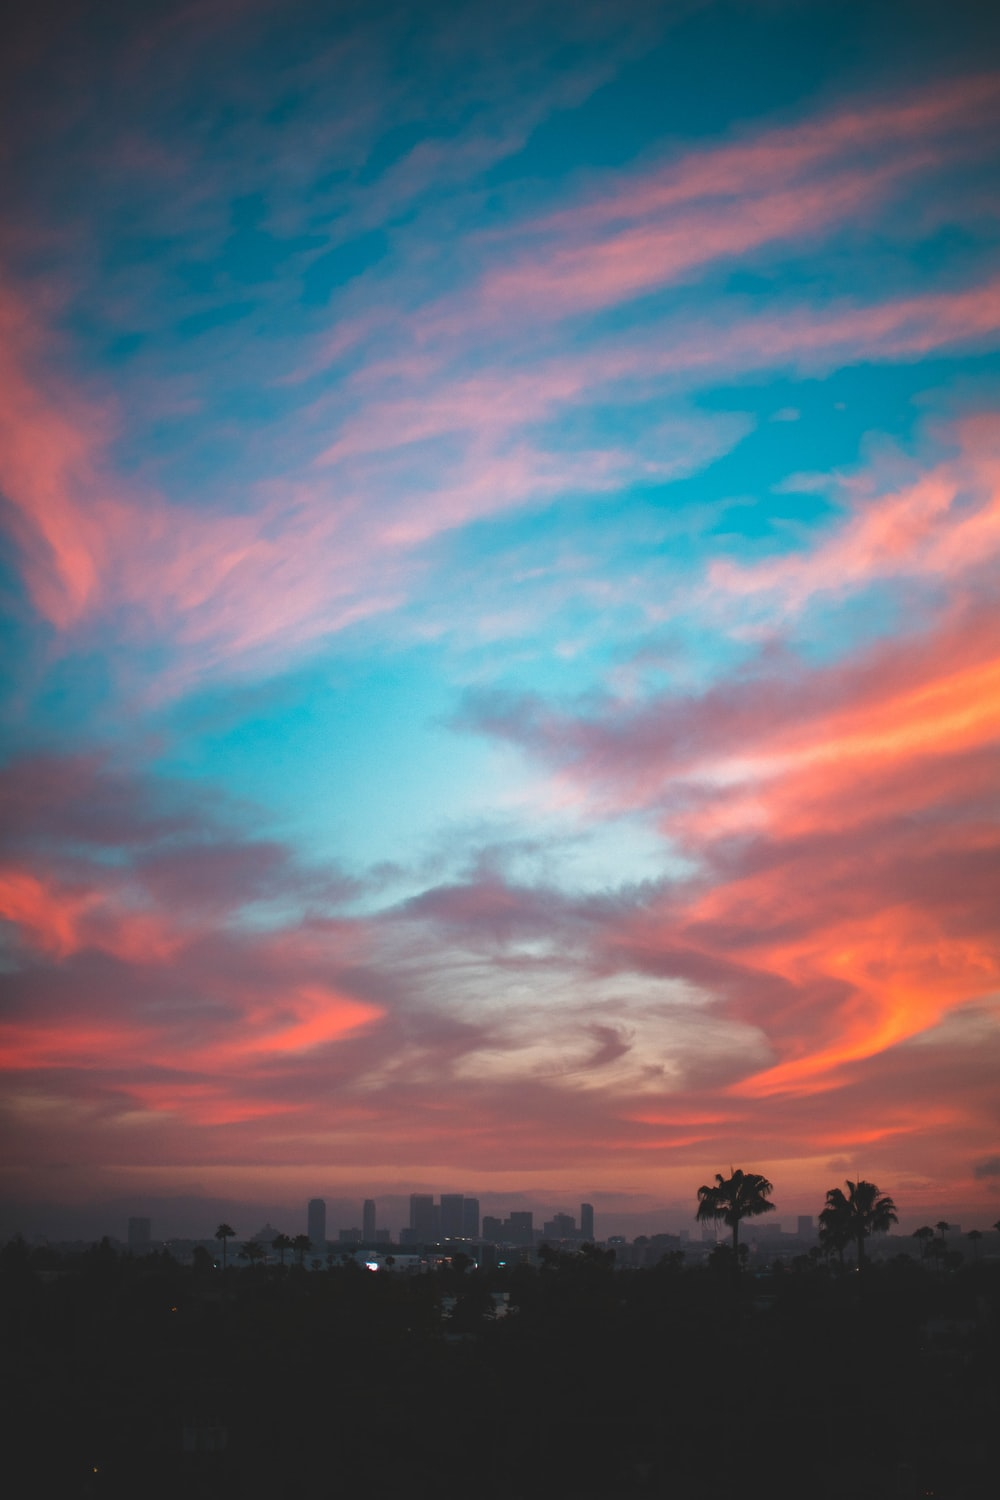 500 sunset cloud pictures stunning download free images on unsplash 500 sunset cloud pictures stunning